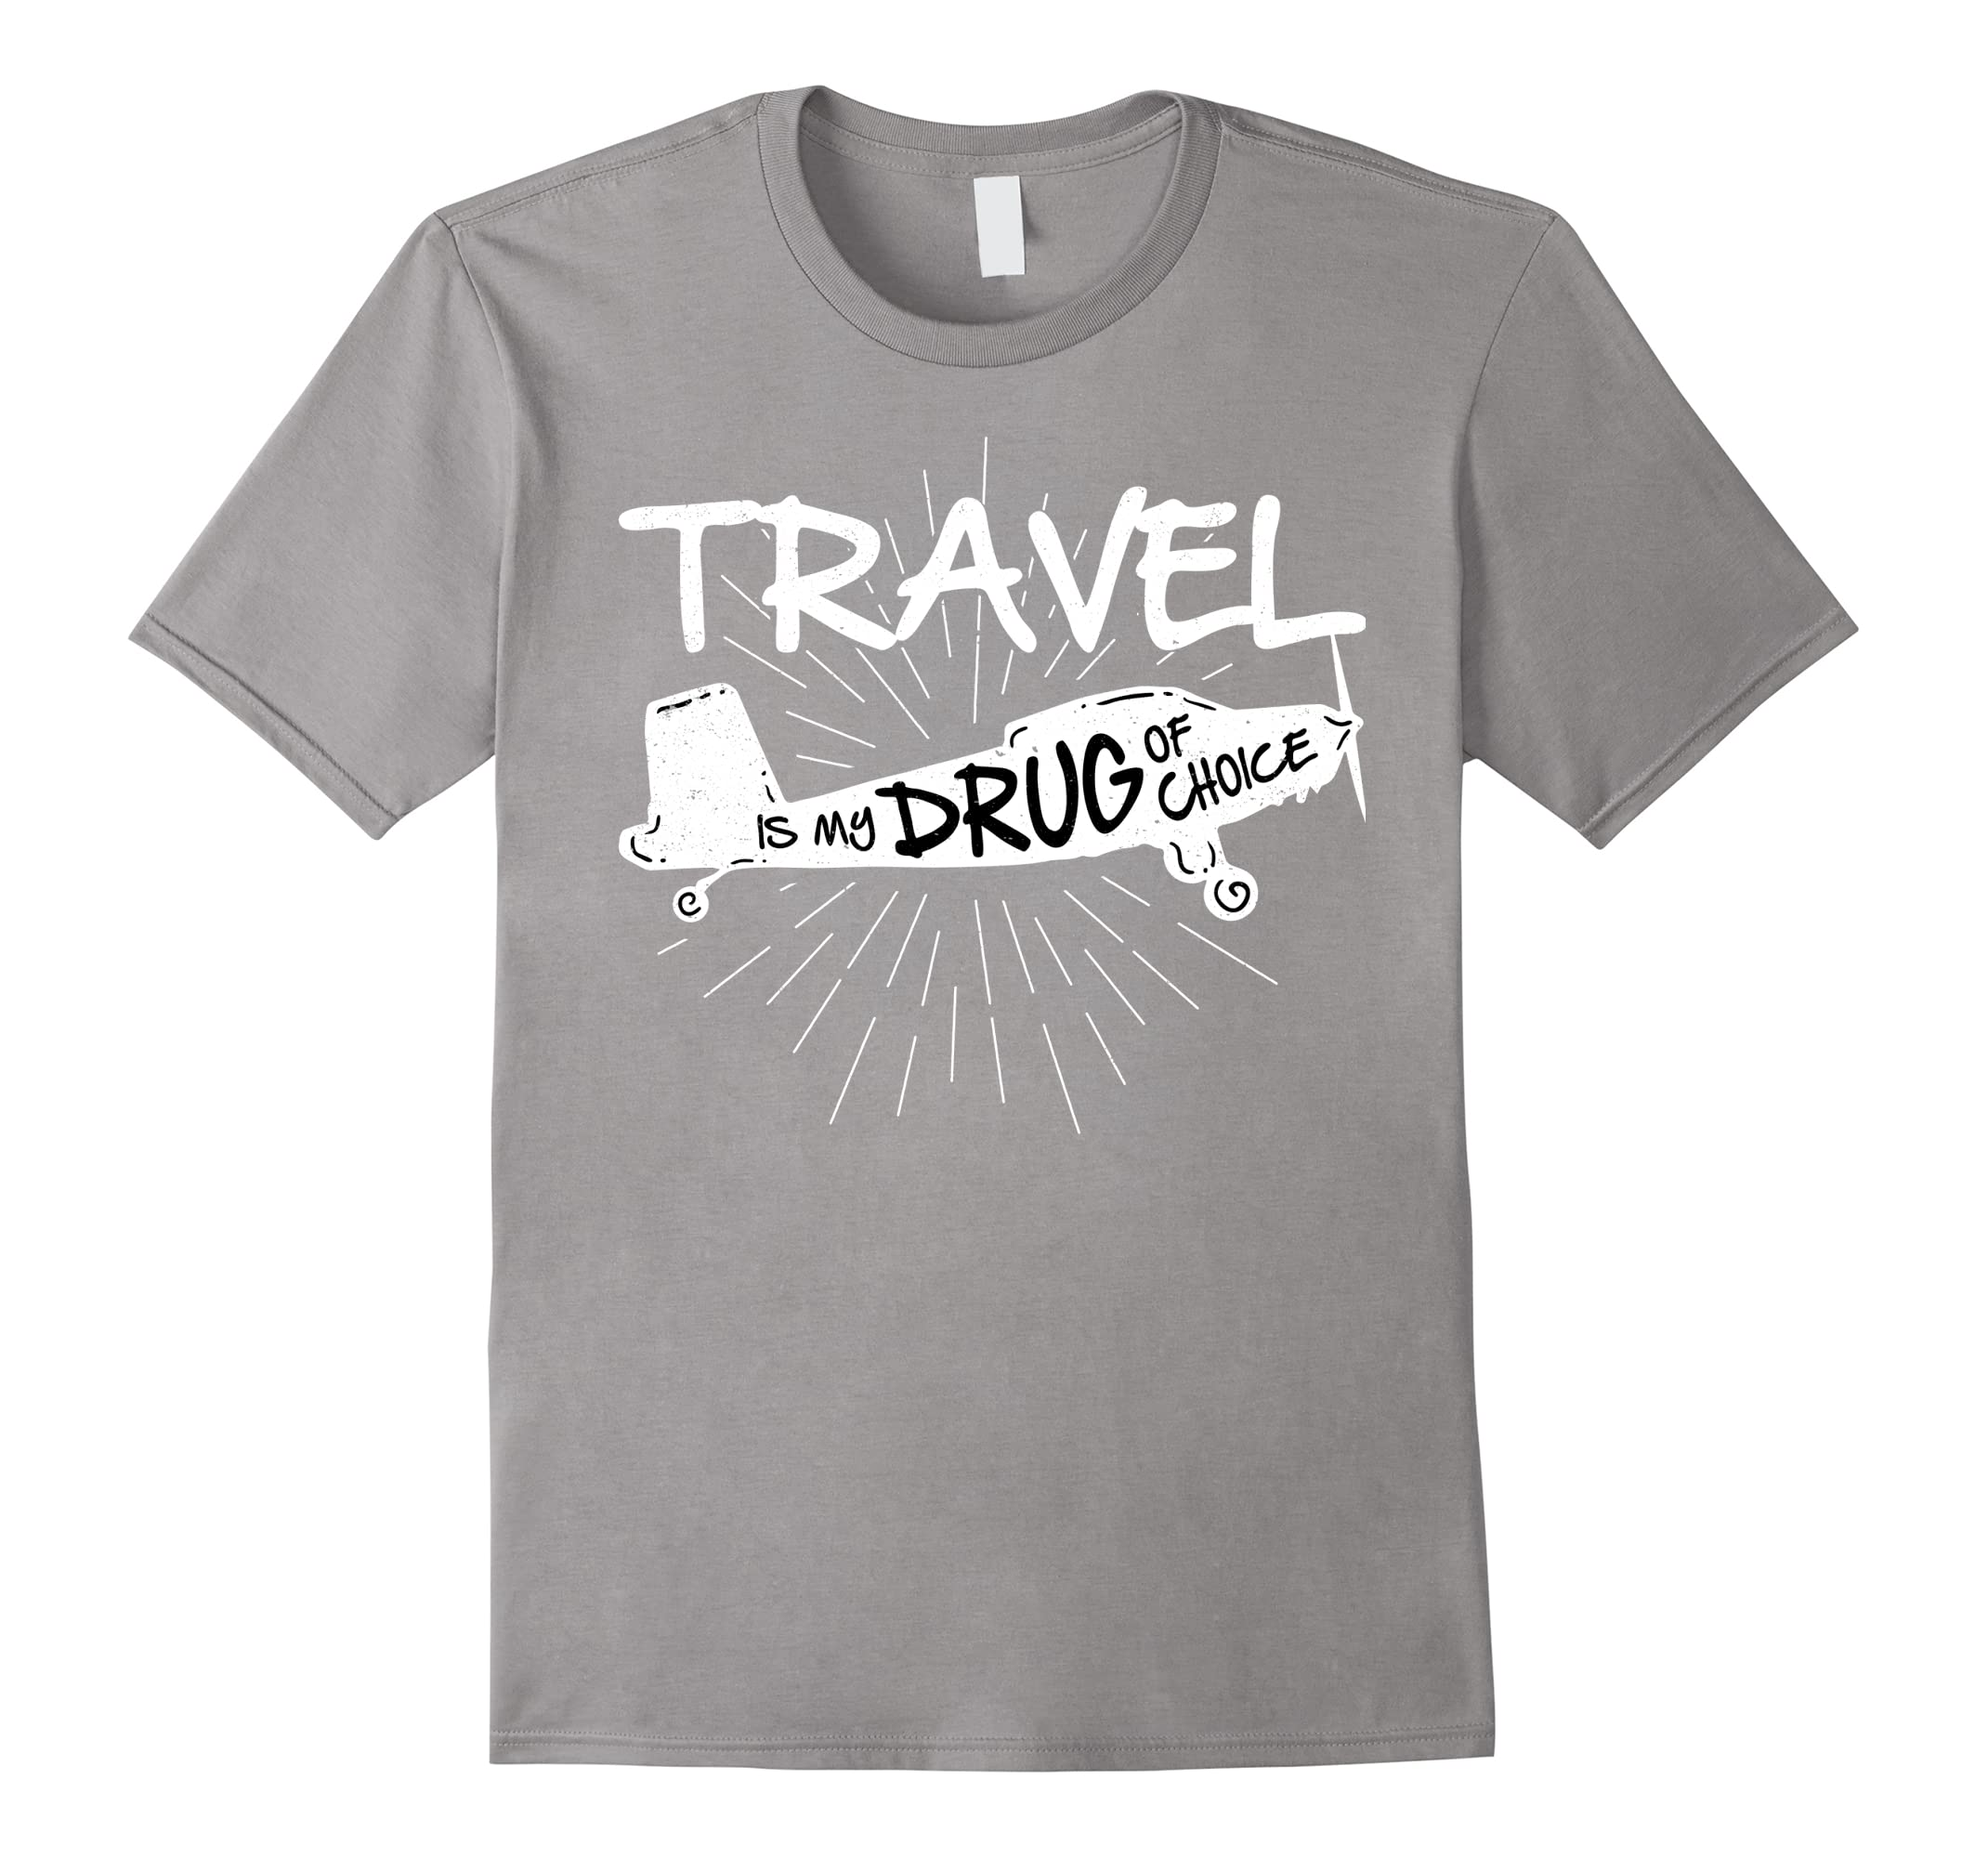 Travel Is My Drug of Choice T Shirt Airplane Tee for Travel-RT